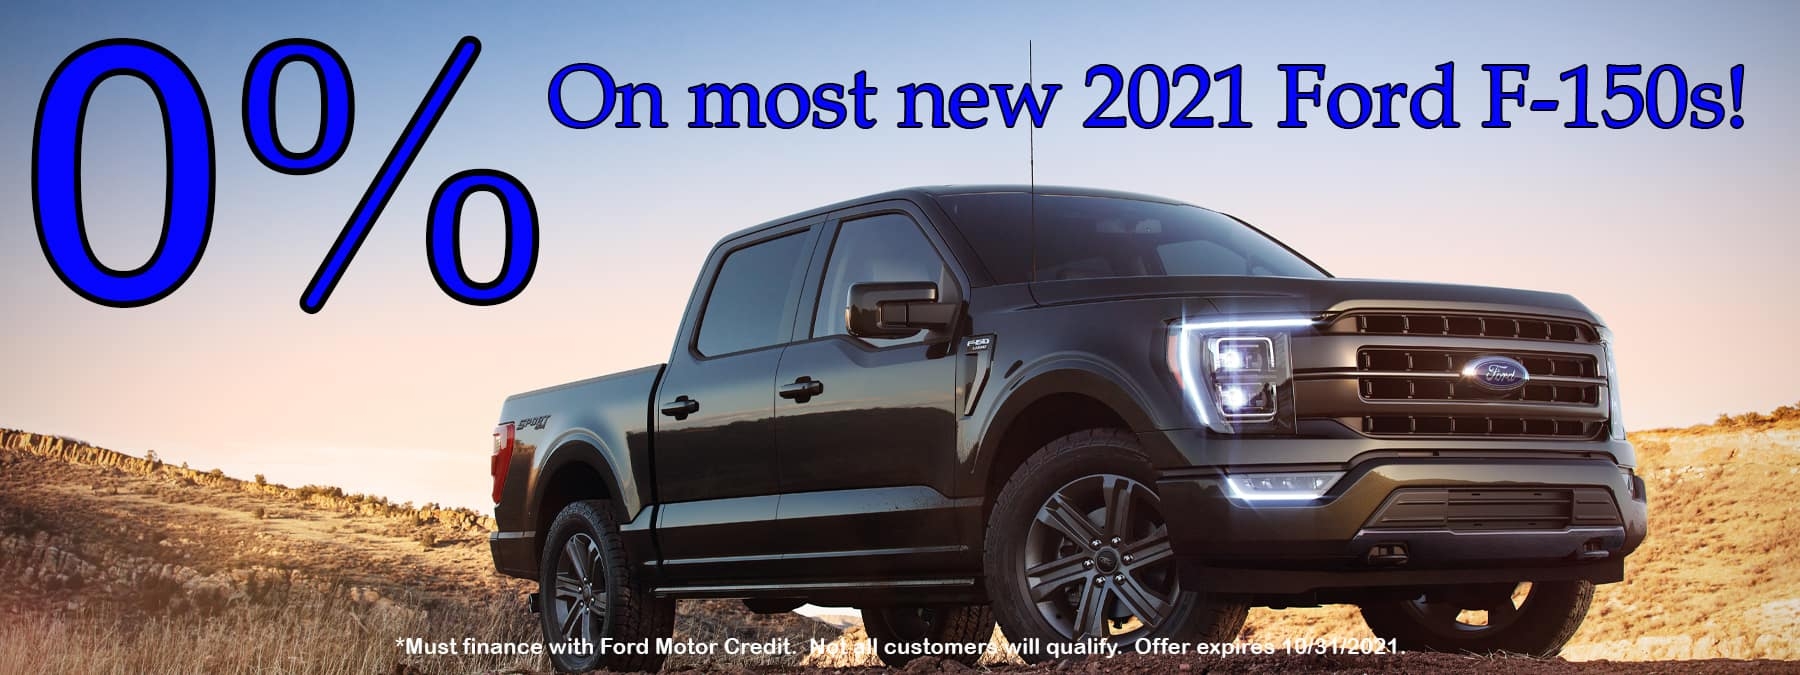 October 2021, 0% financing on most Ford F-150s